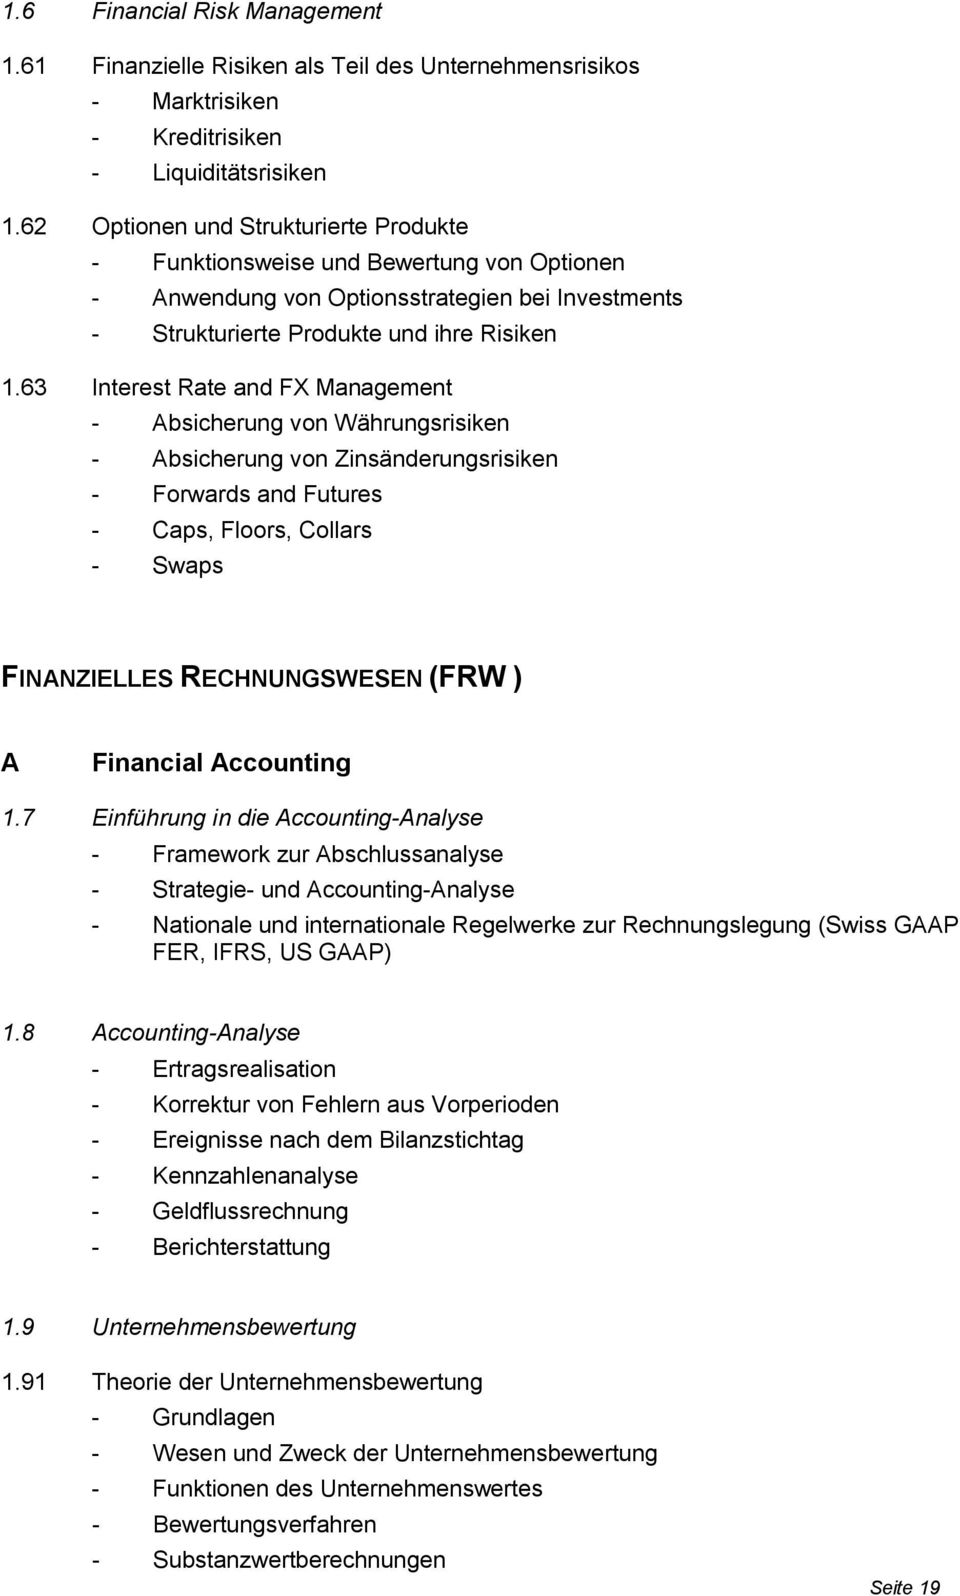 63 Interest Rate and FX Management - Absicherung von Währungsrisiken - Absicherung von Zinsänderungsrisiken - Forwards and Futures - Caps, Floors, Collars - Swaps FINANZIELLES RECHNUNGSWESEN (FRW ) A